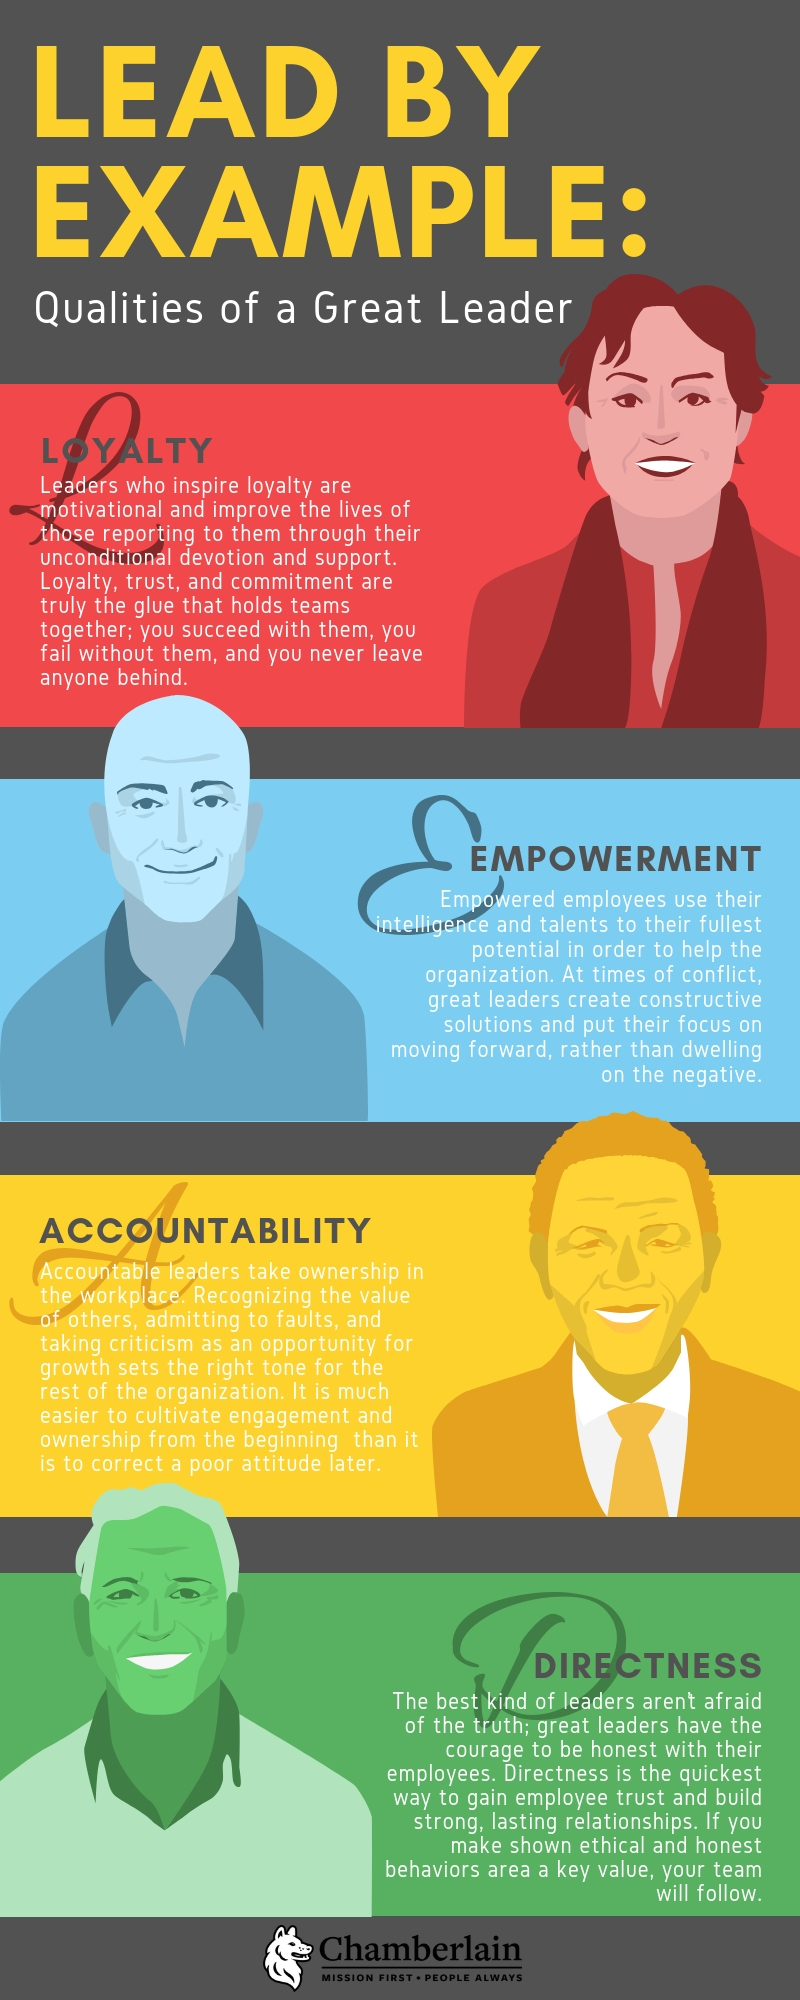 Lead by Example: Qualities of a Great Leader